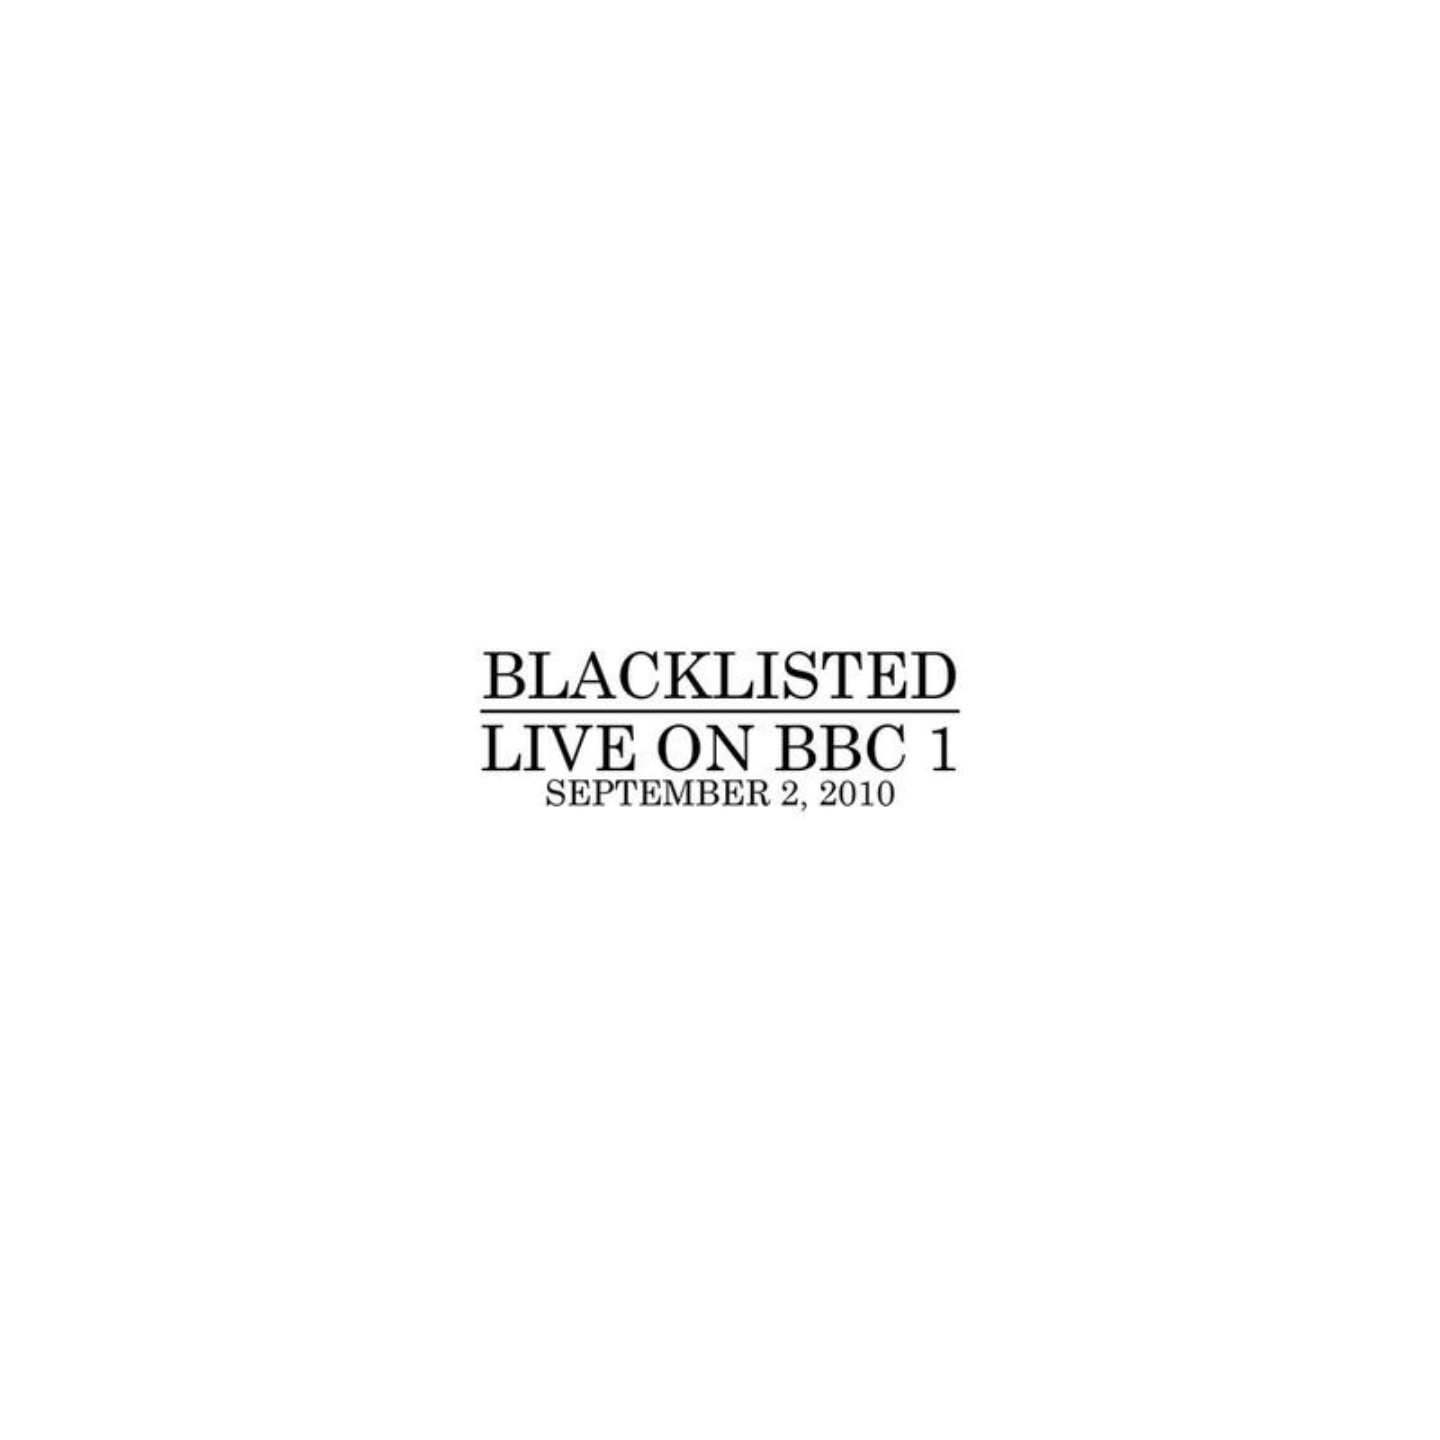 BLACKLISTED - Live On BBC 1